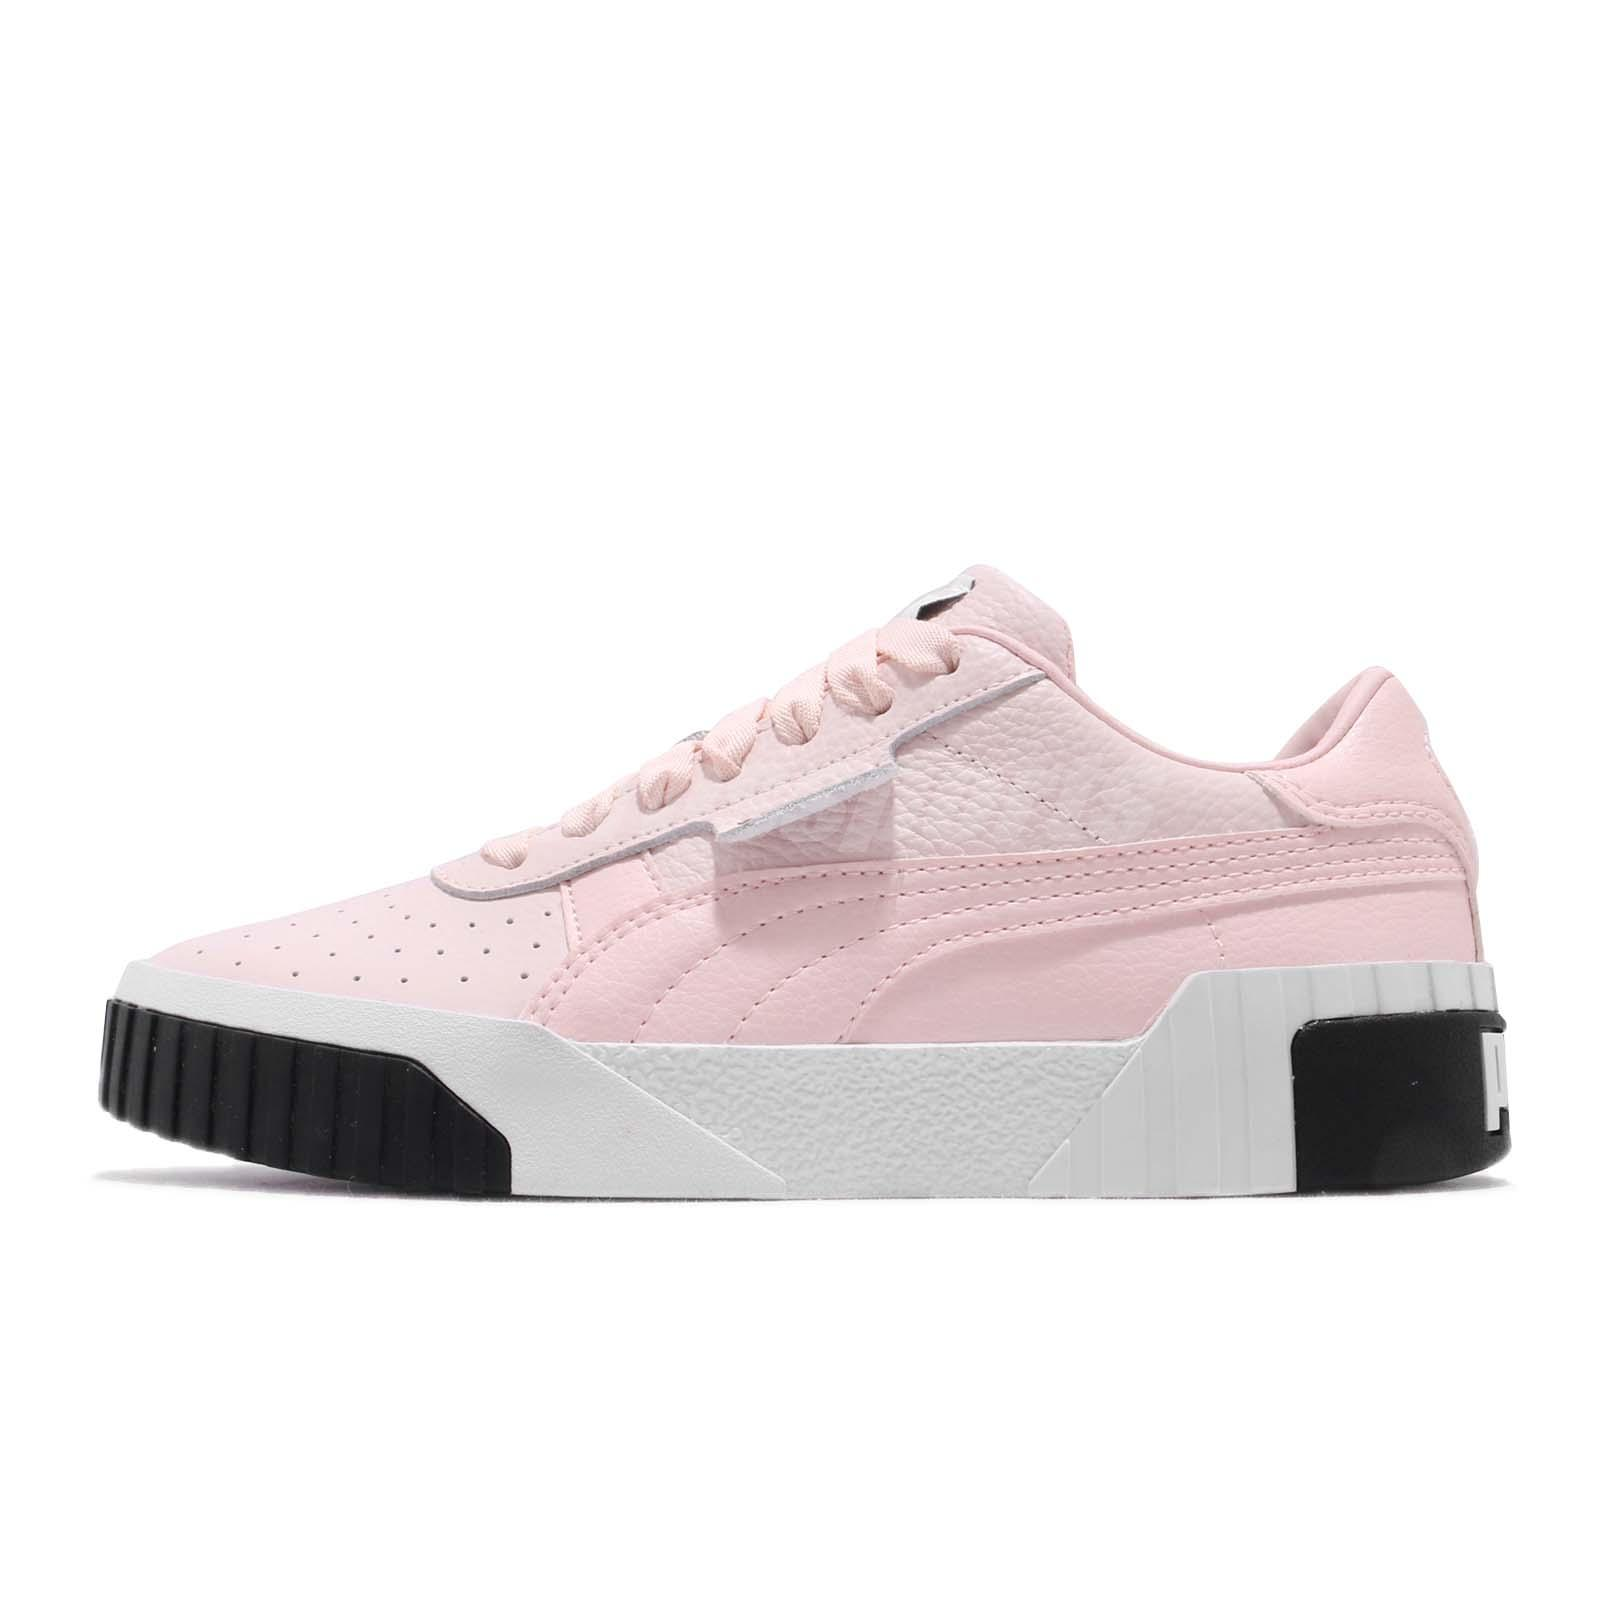 Détails Puma Wns Pink Shoes Dogwood White 06 Sneakers Women Sur Fashion 369155 Cali CrhtQsd